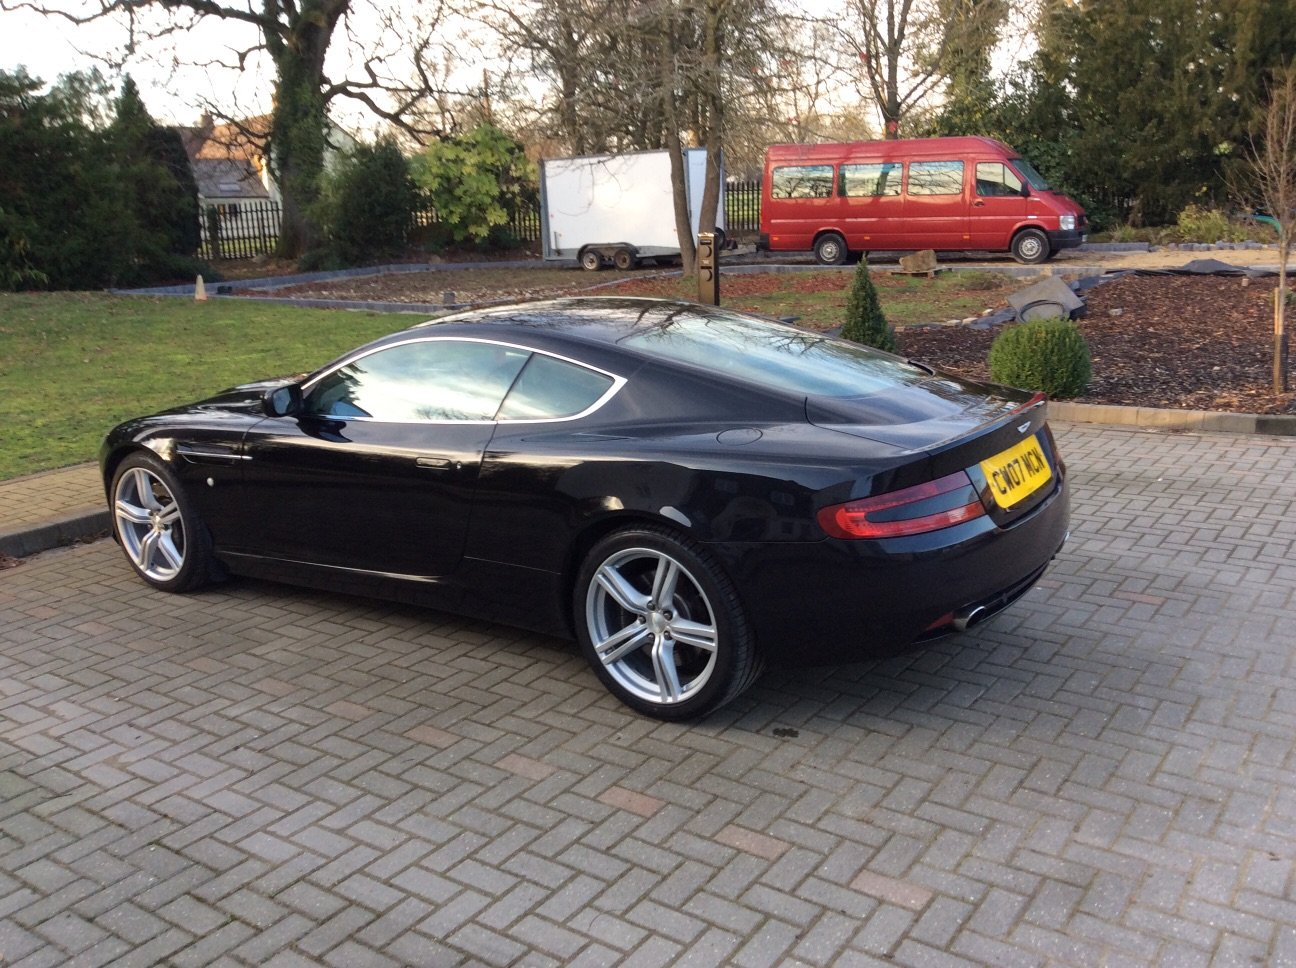 2007 Stunning DB9 Coupe For Sale (picture 3 of 3)